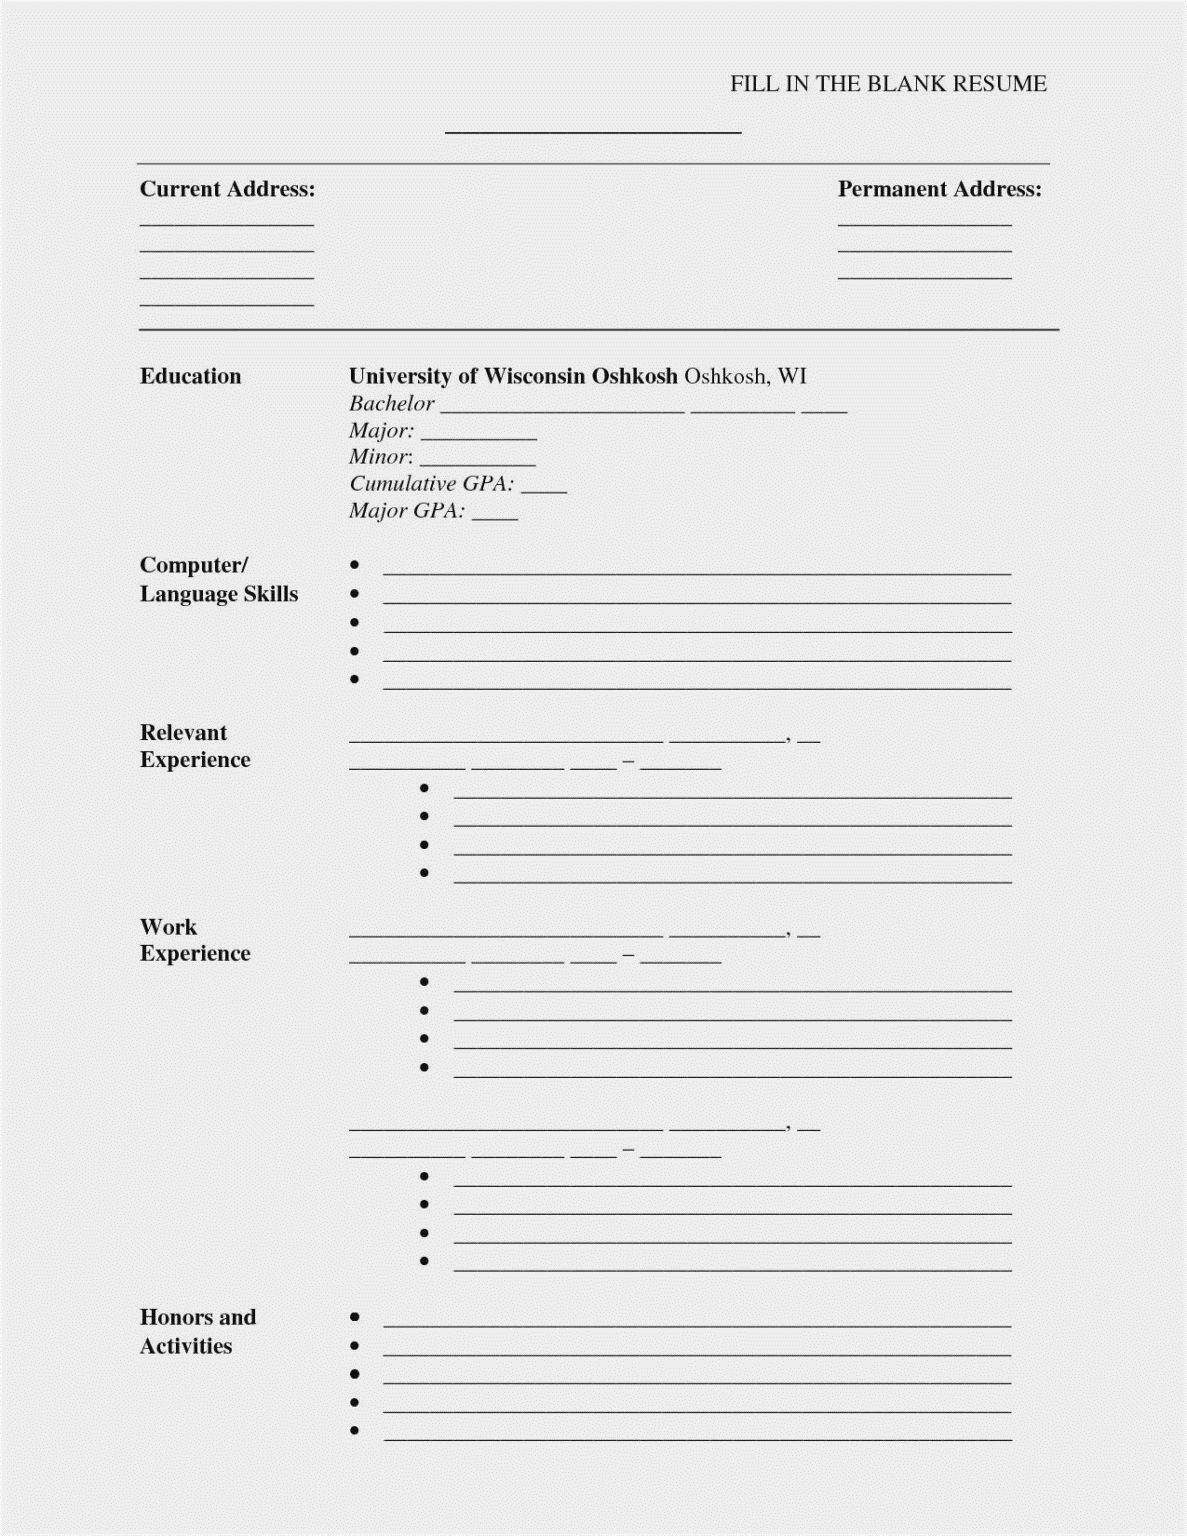 001 Magnificent Free Blank Resume Template Word Inspiration  Downloadable M For MicrosoftFull